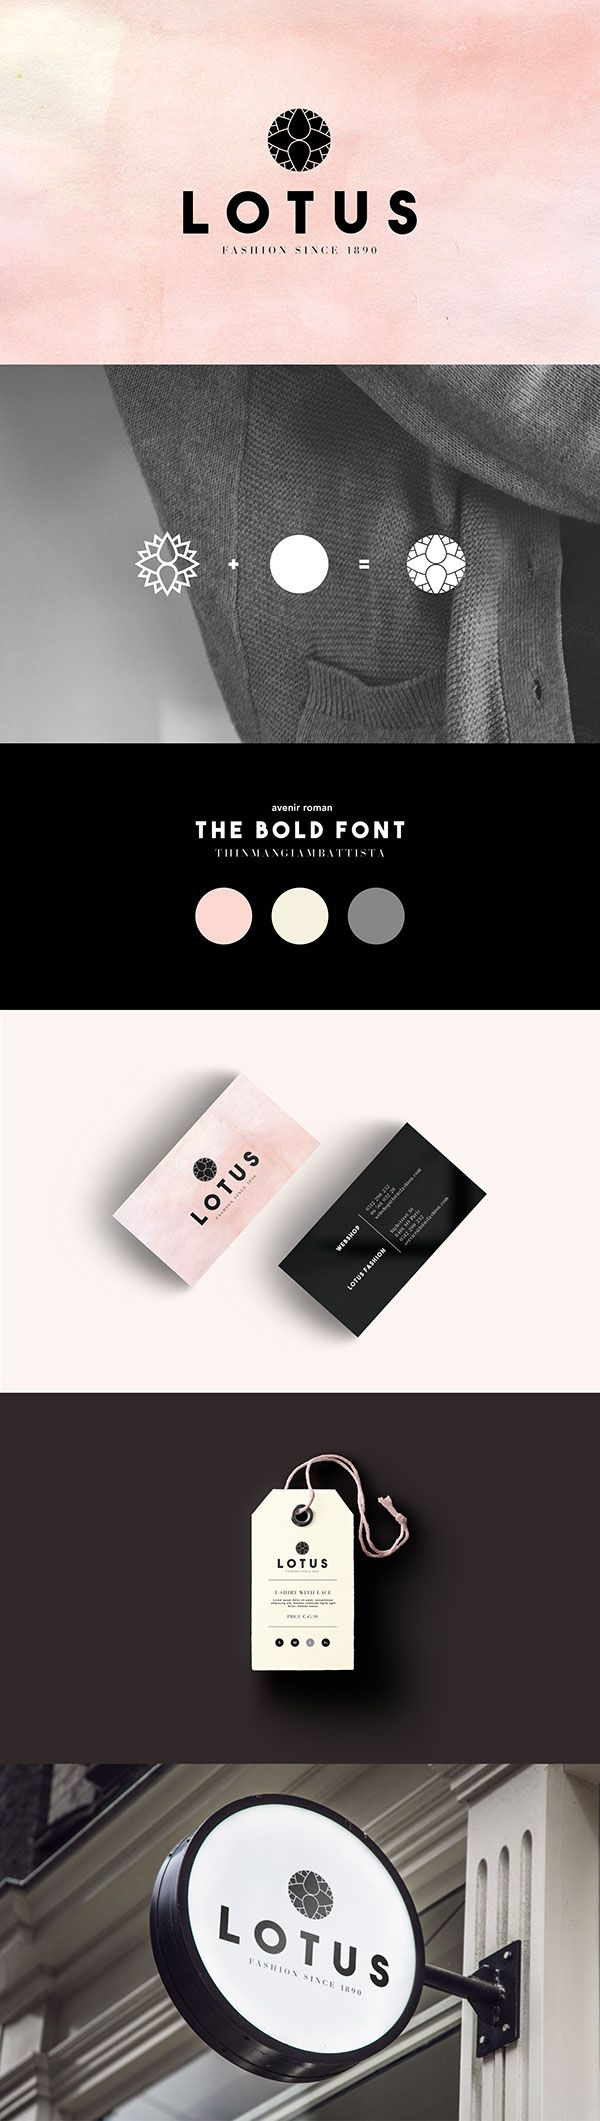 Lotus Branding - by Leonie van Dorth #lotus #brand #branding #design #inspiration #fashion #design #logo #graphic #fashion #shop